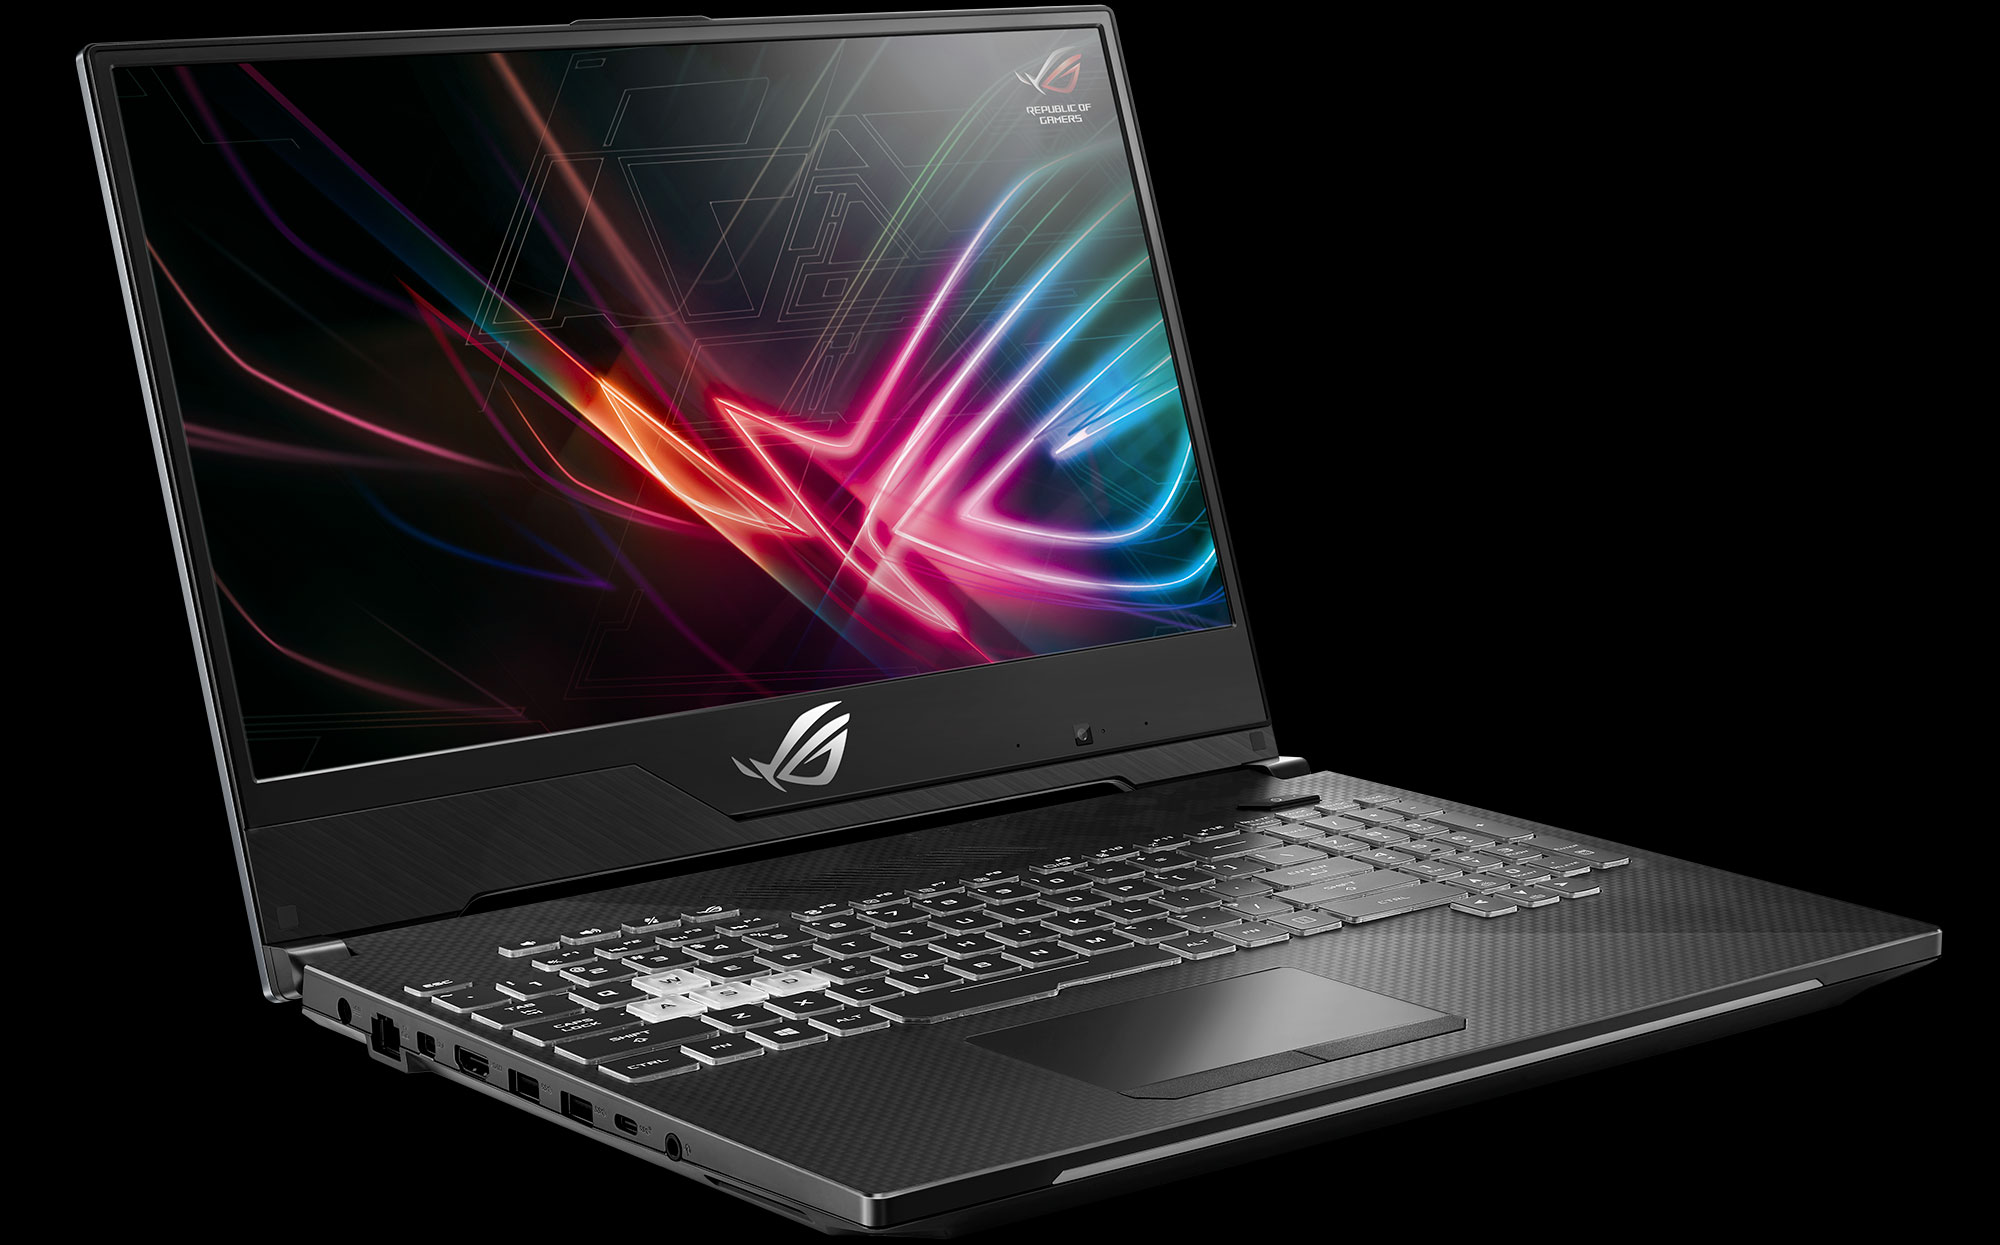 New ASUS ROG Products Revealed at Computex 2018 - Windows ...